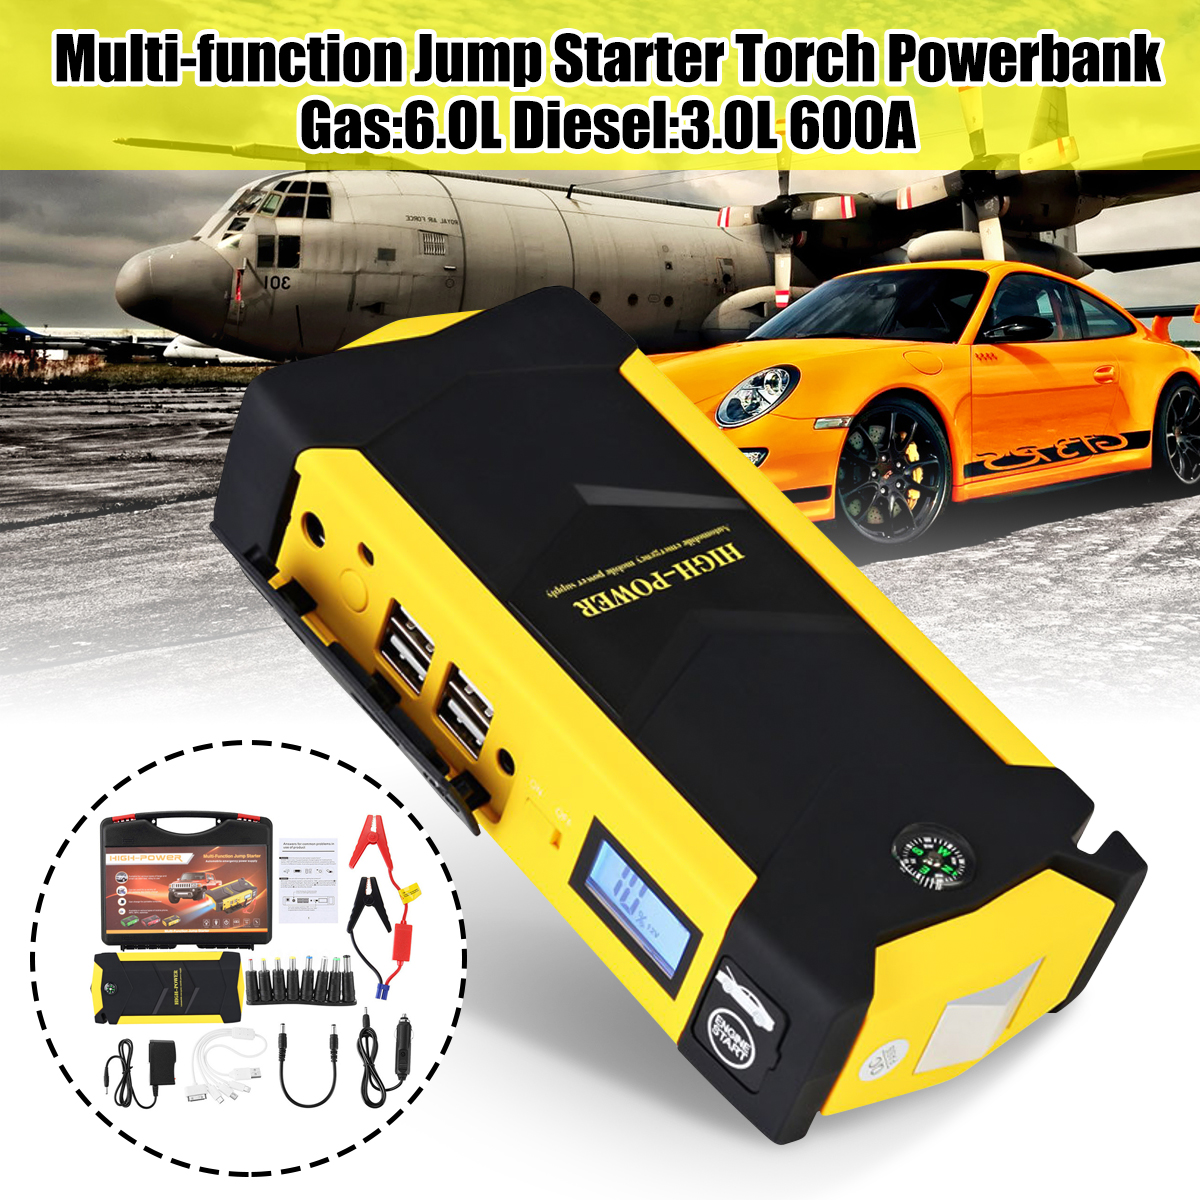 12V Mini Portable 82800mAh LED Car Jump Starter Engine Auto Emergency Starting Device Power Bank Car Phone Charger With 4USB practical 89800mah 12v 4usb car battery charger starting car jump starter booster power bank tool kit for auto starting device